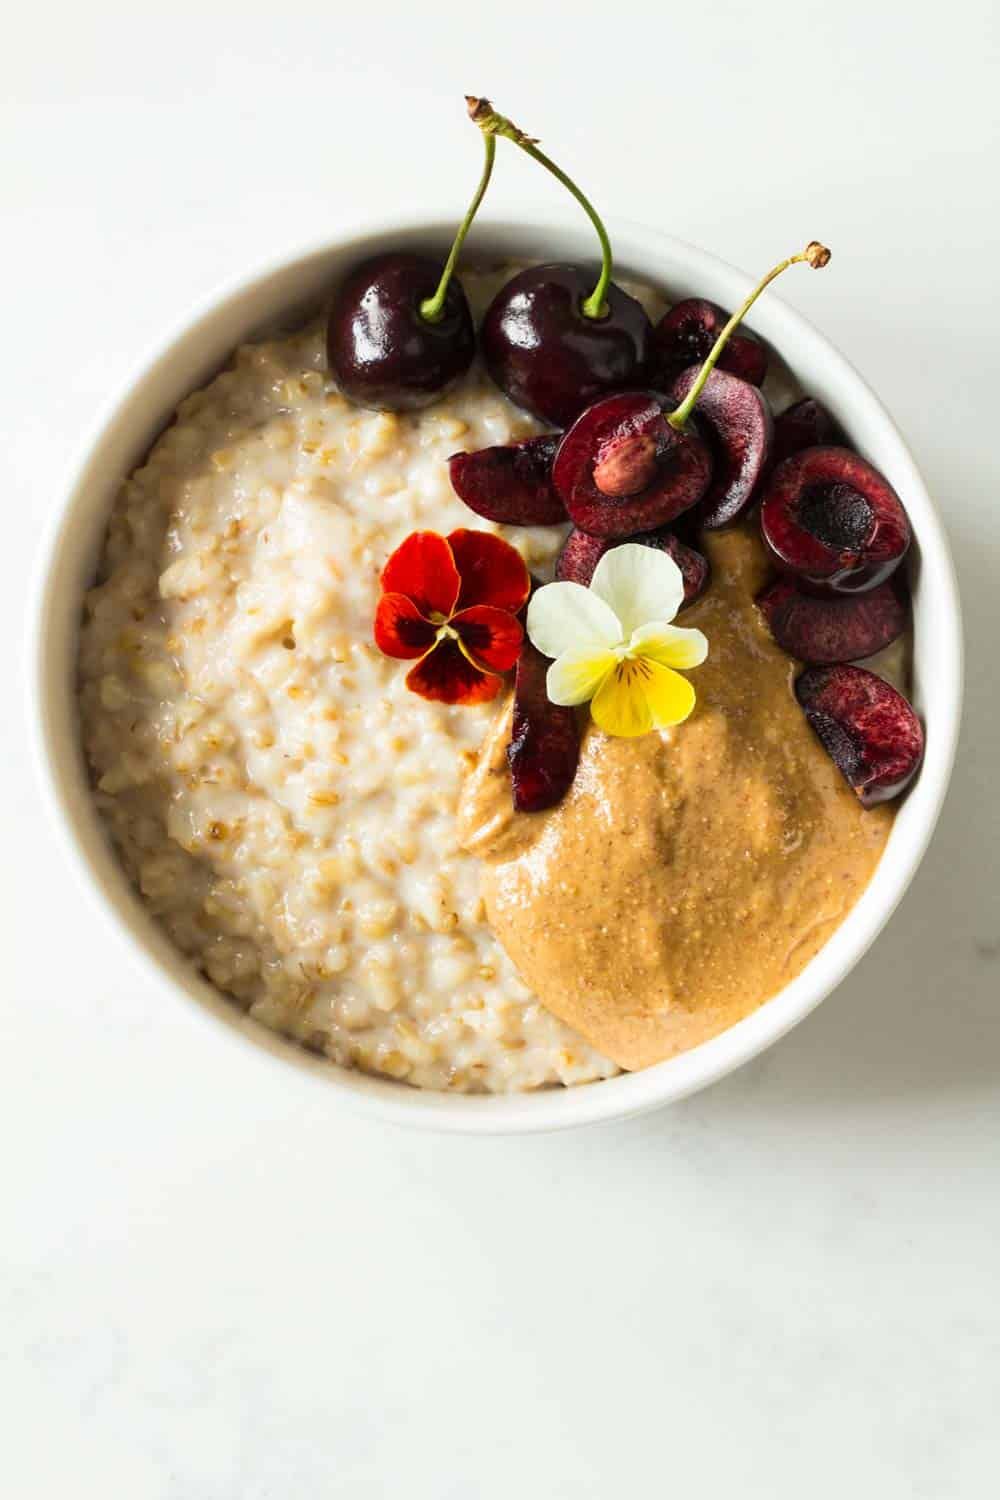 Instant pot steel cut oats topped with almond butter and cherries, served in a white bowl.